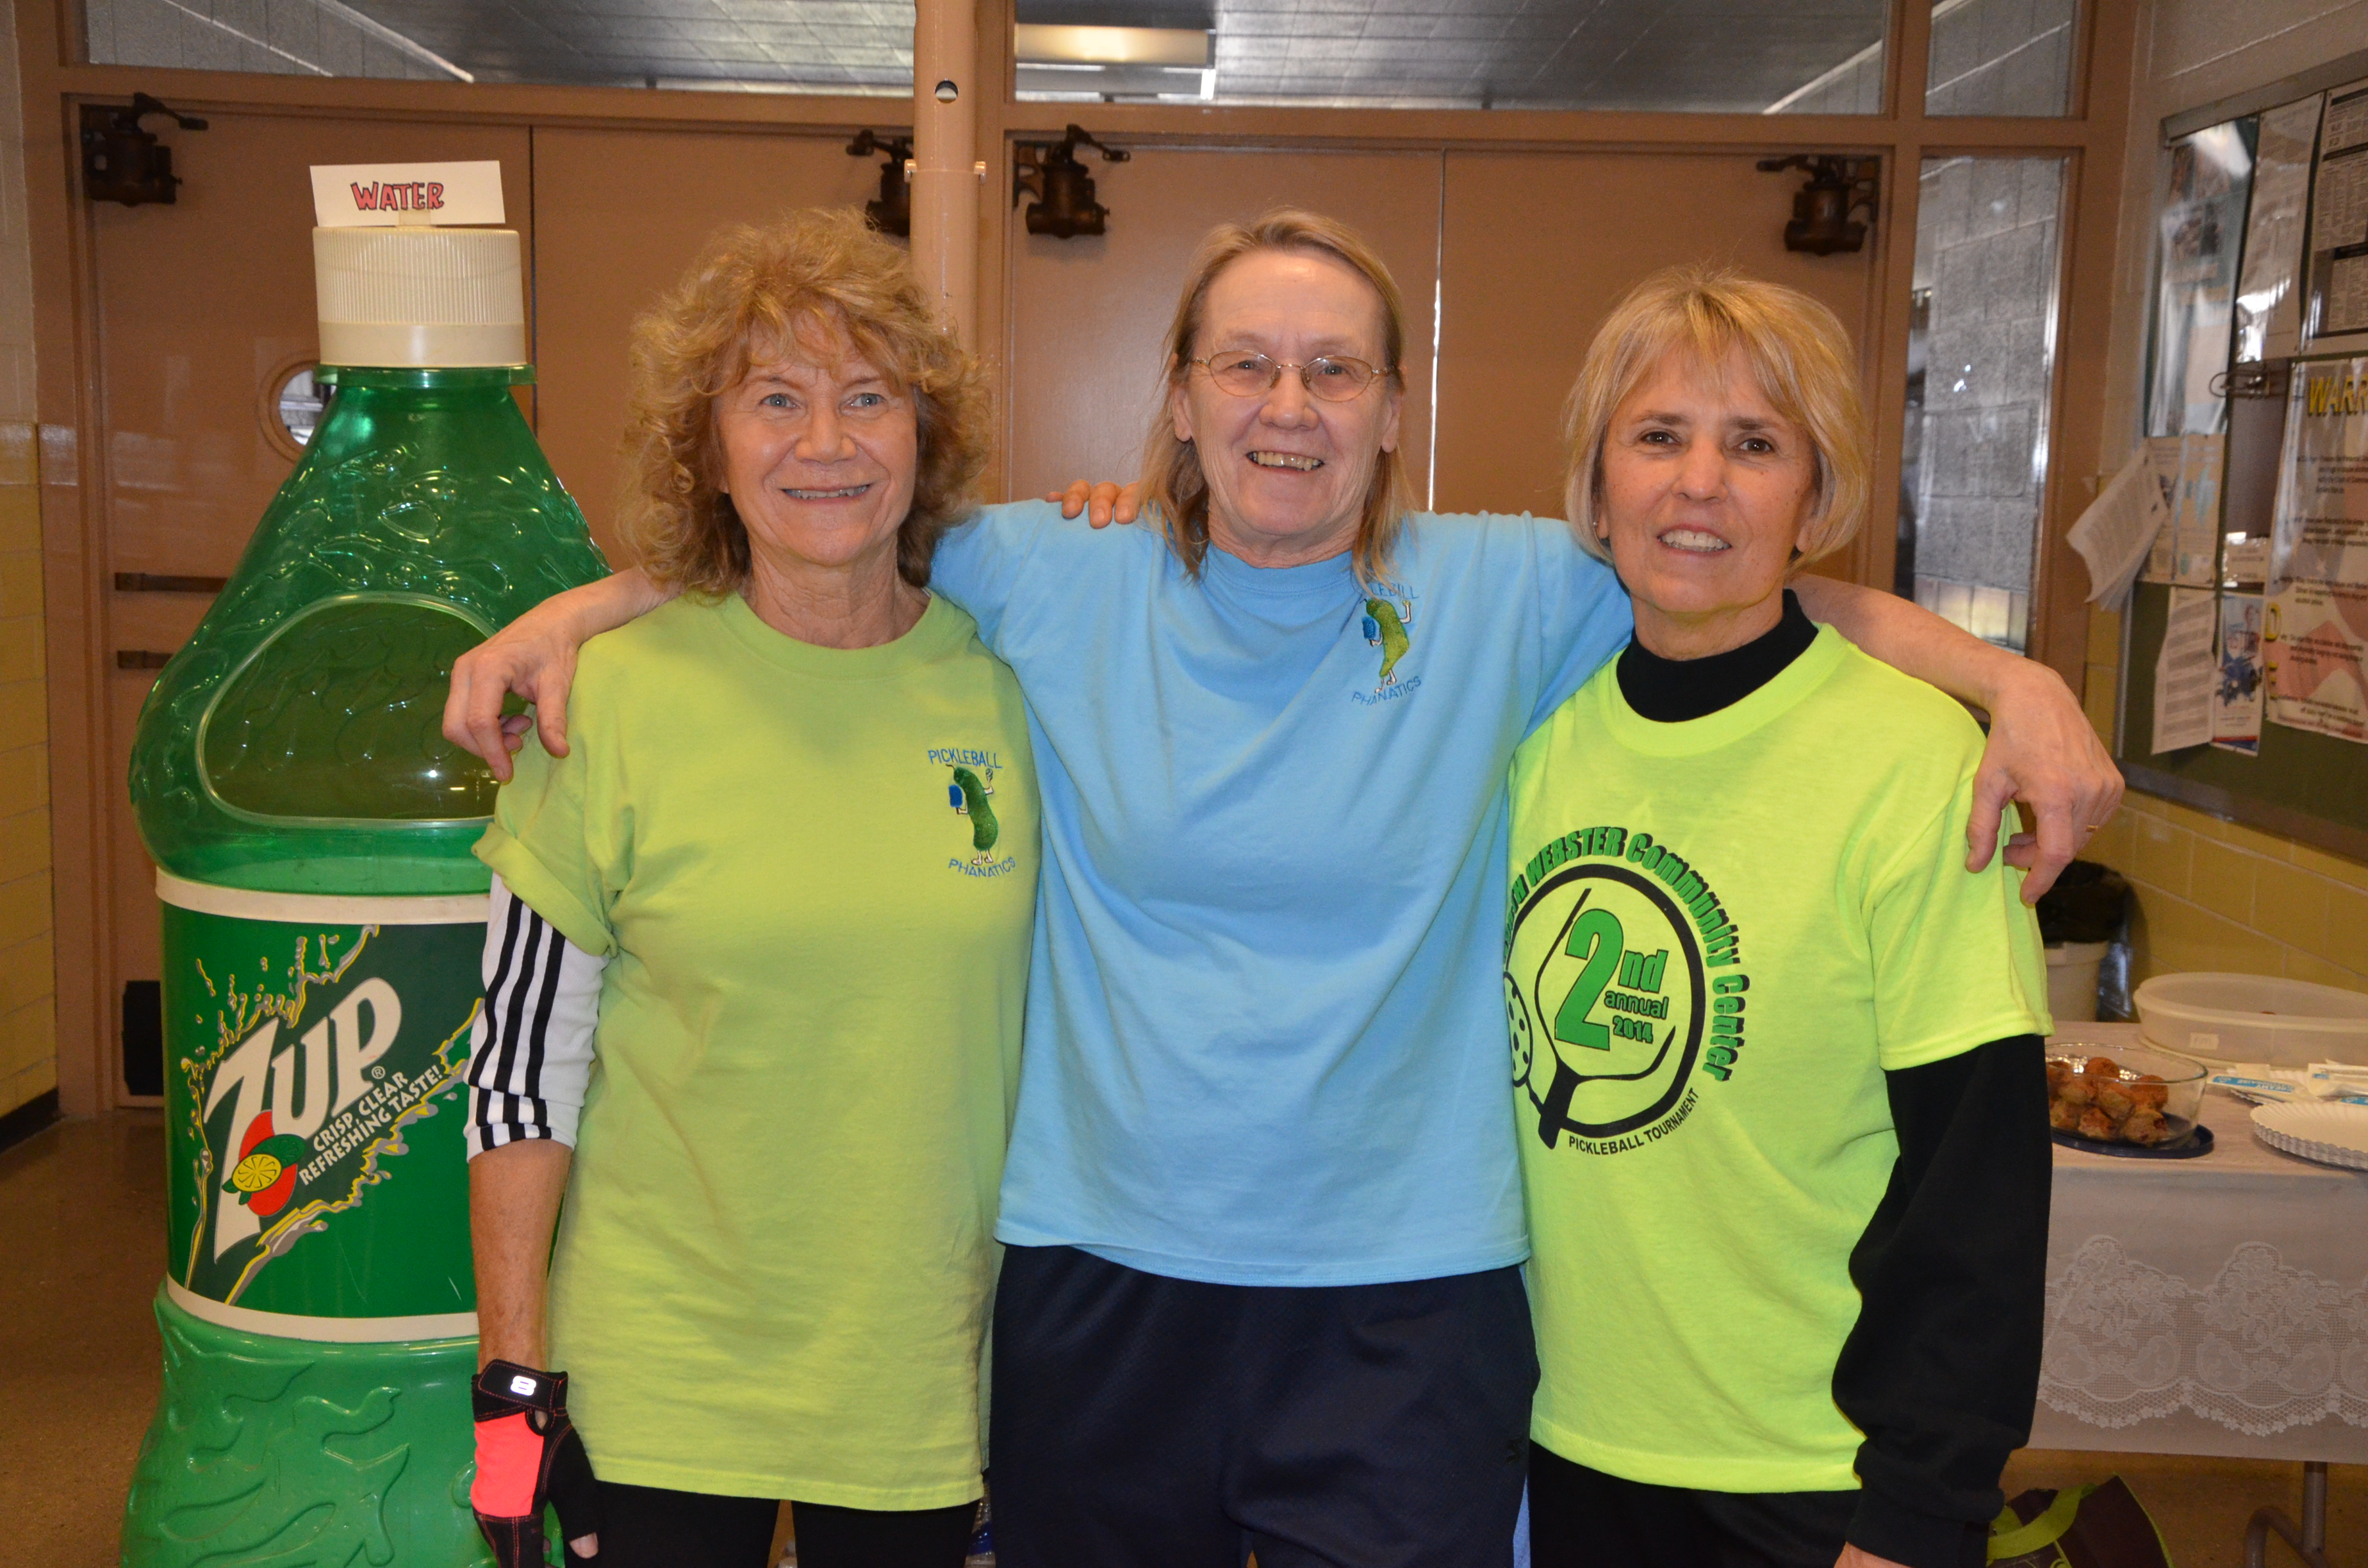 Women's division winners pose for a photo (from left):  Edie Watson, first place; Dianne Rice, second place; and Kathy Tittle, third place.